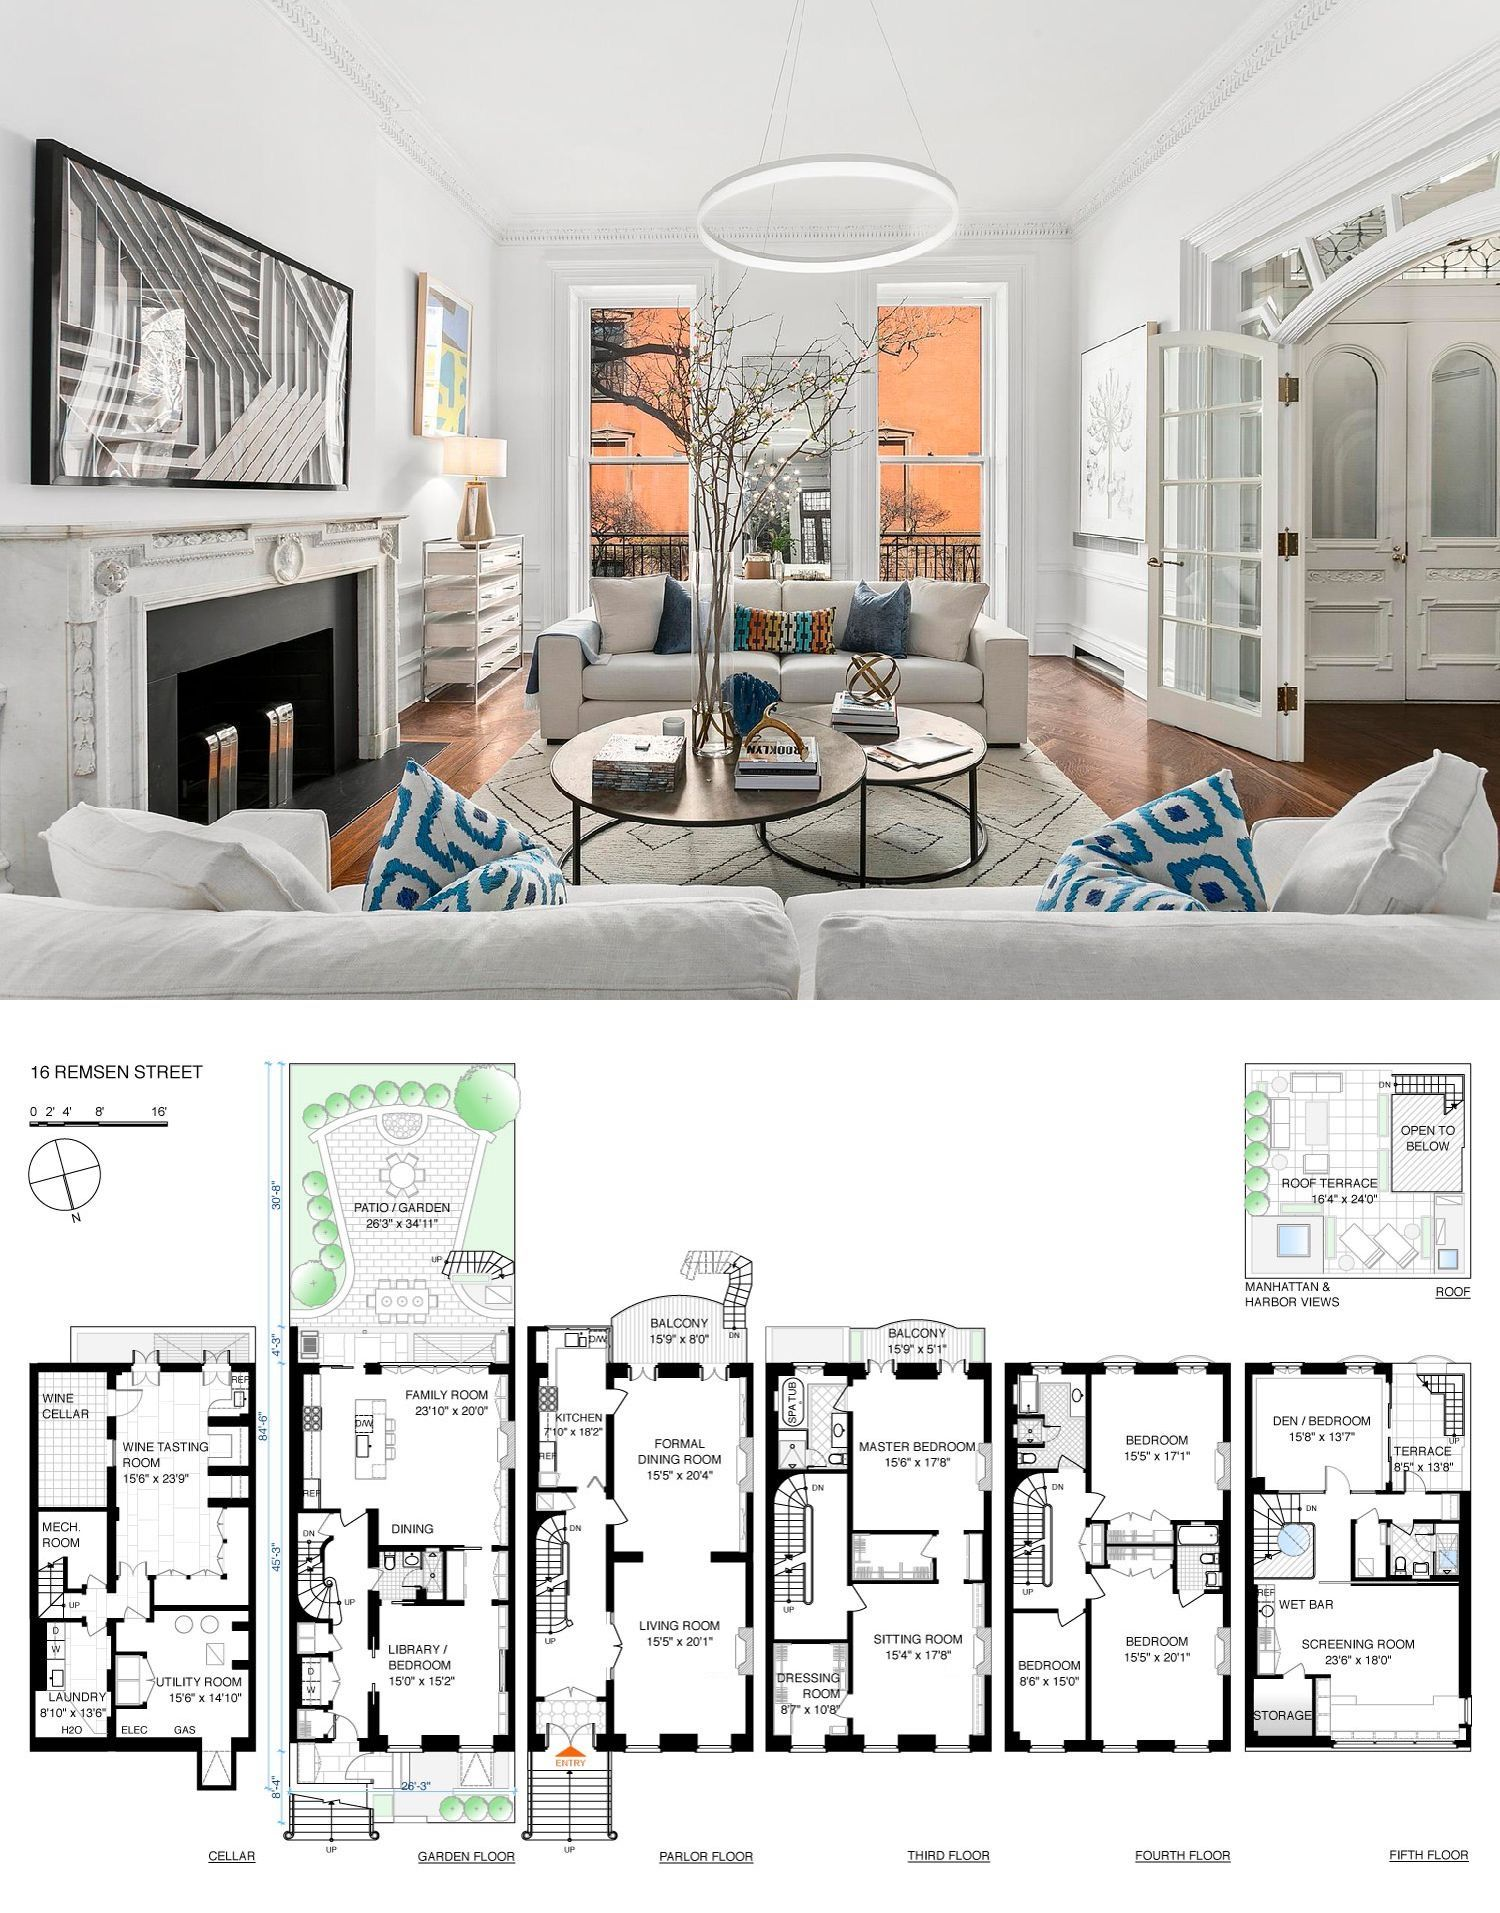 Pin By Sehr Antonio On Board 1 In 2020 Brooklyn House New York Townhouse Townhouse